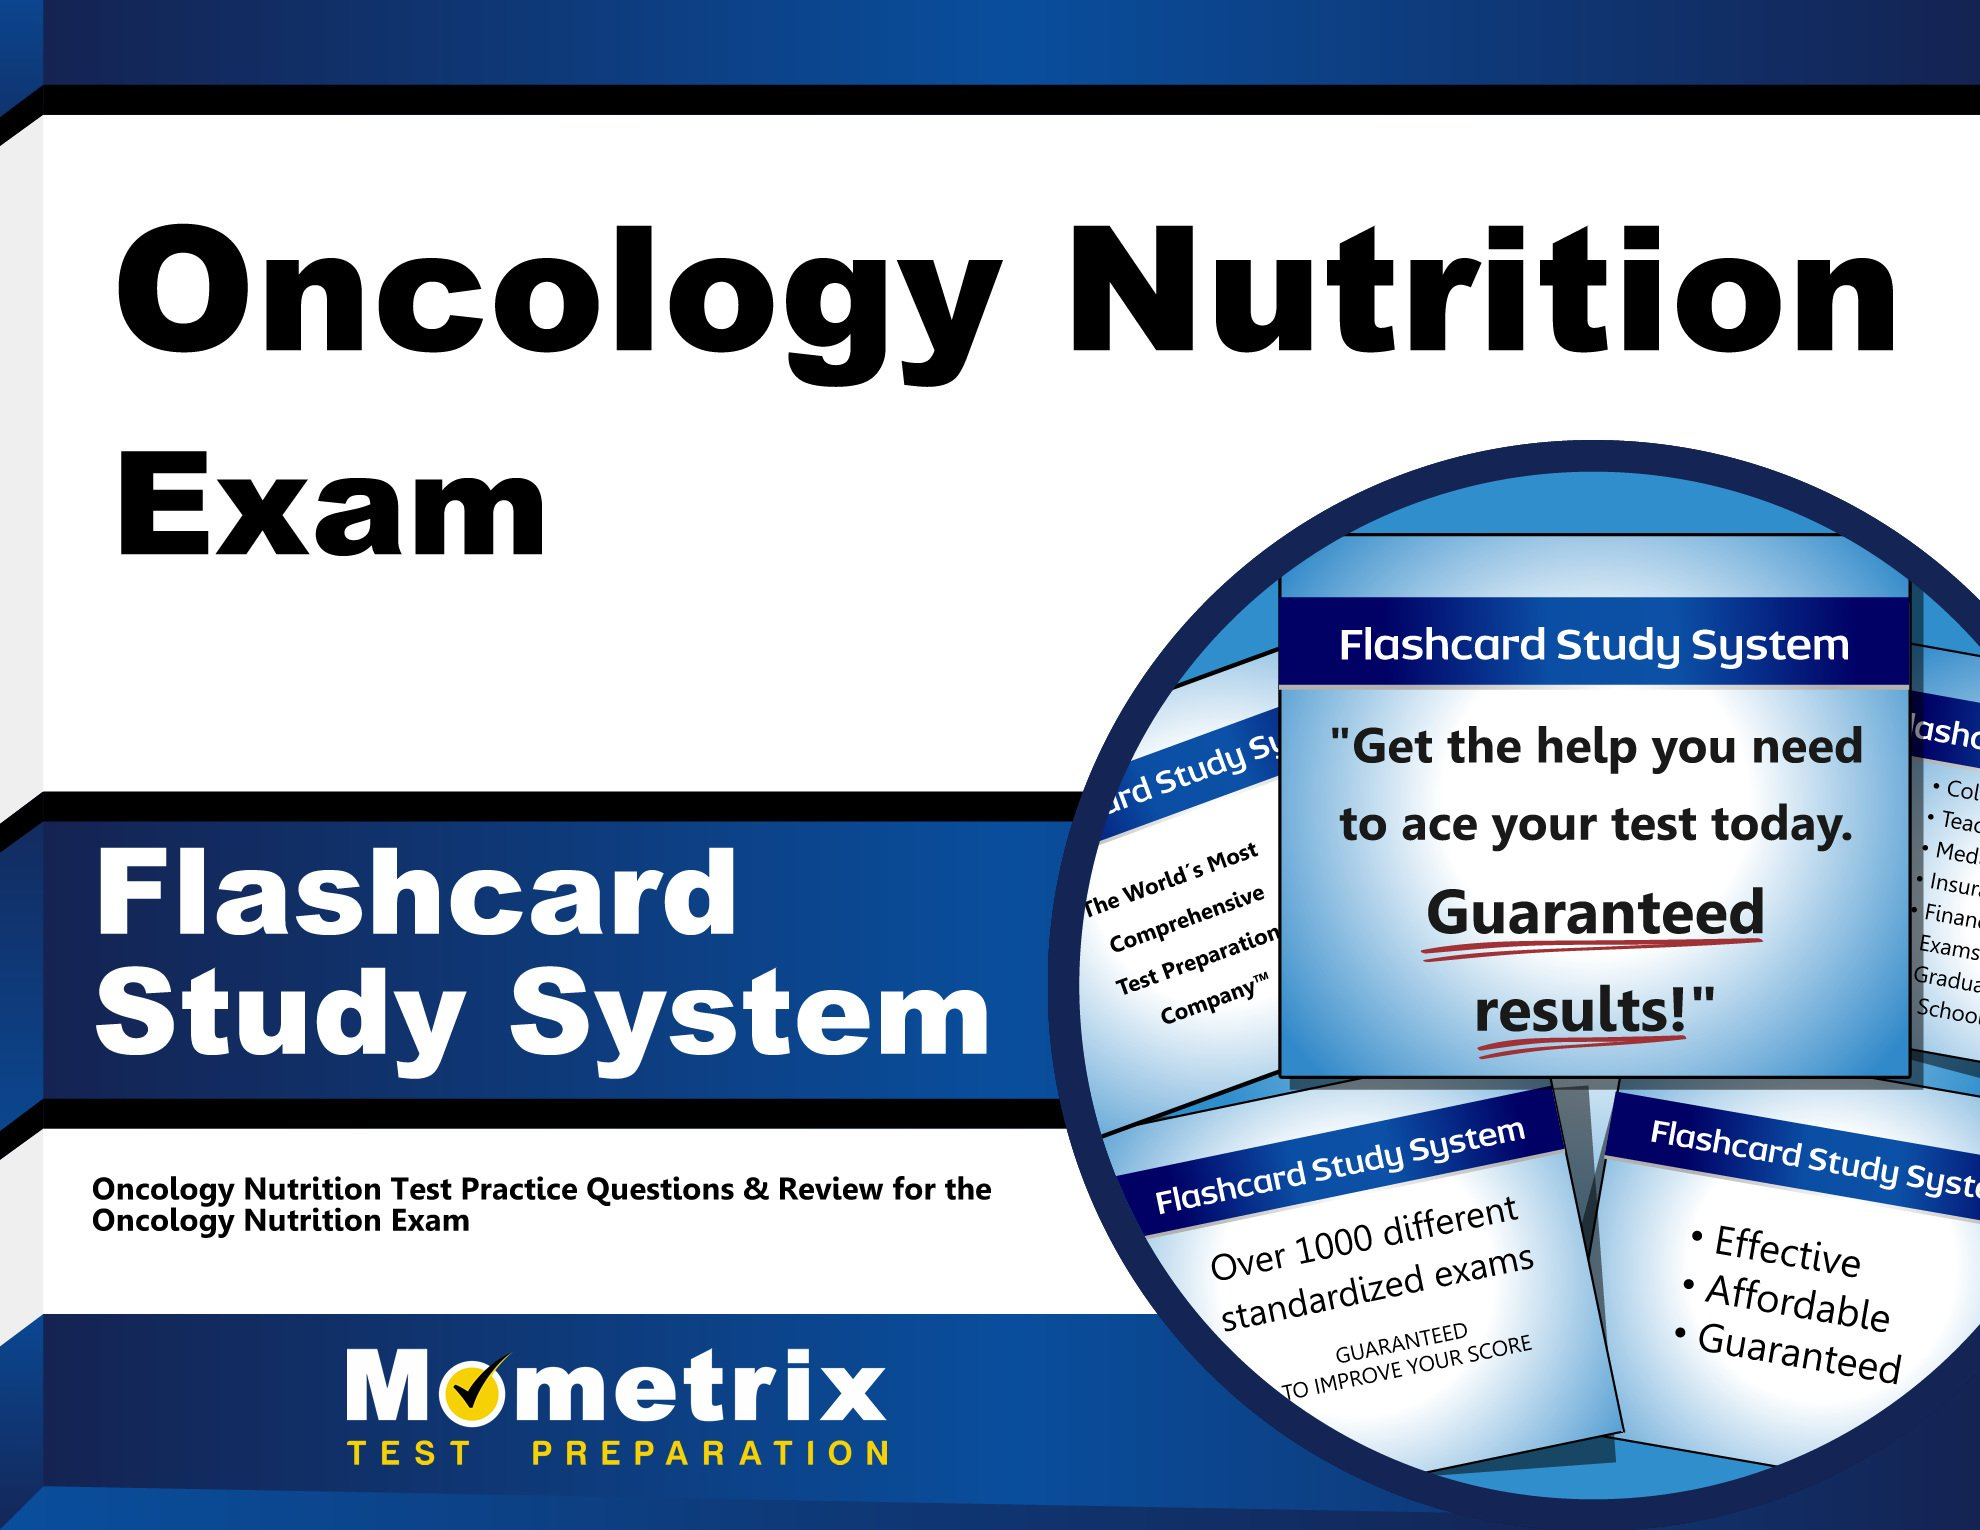 Oncology Nutrition Exam Flashcard Study System Oncology Nutrition